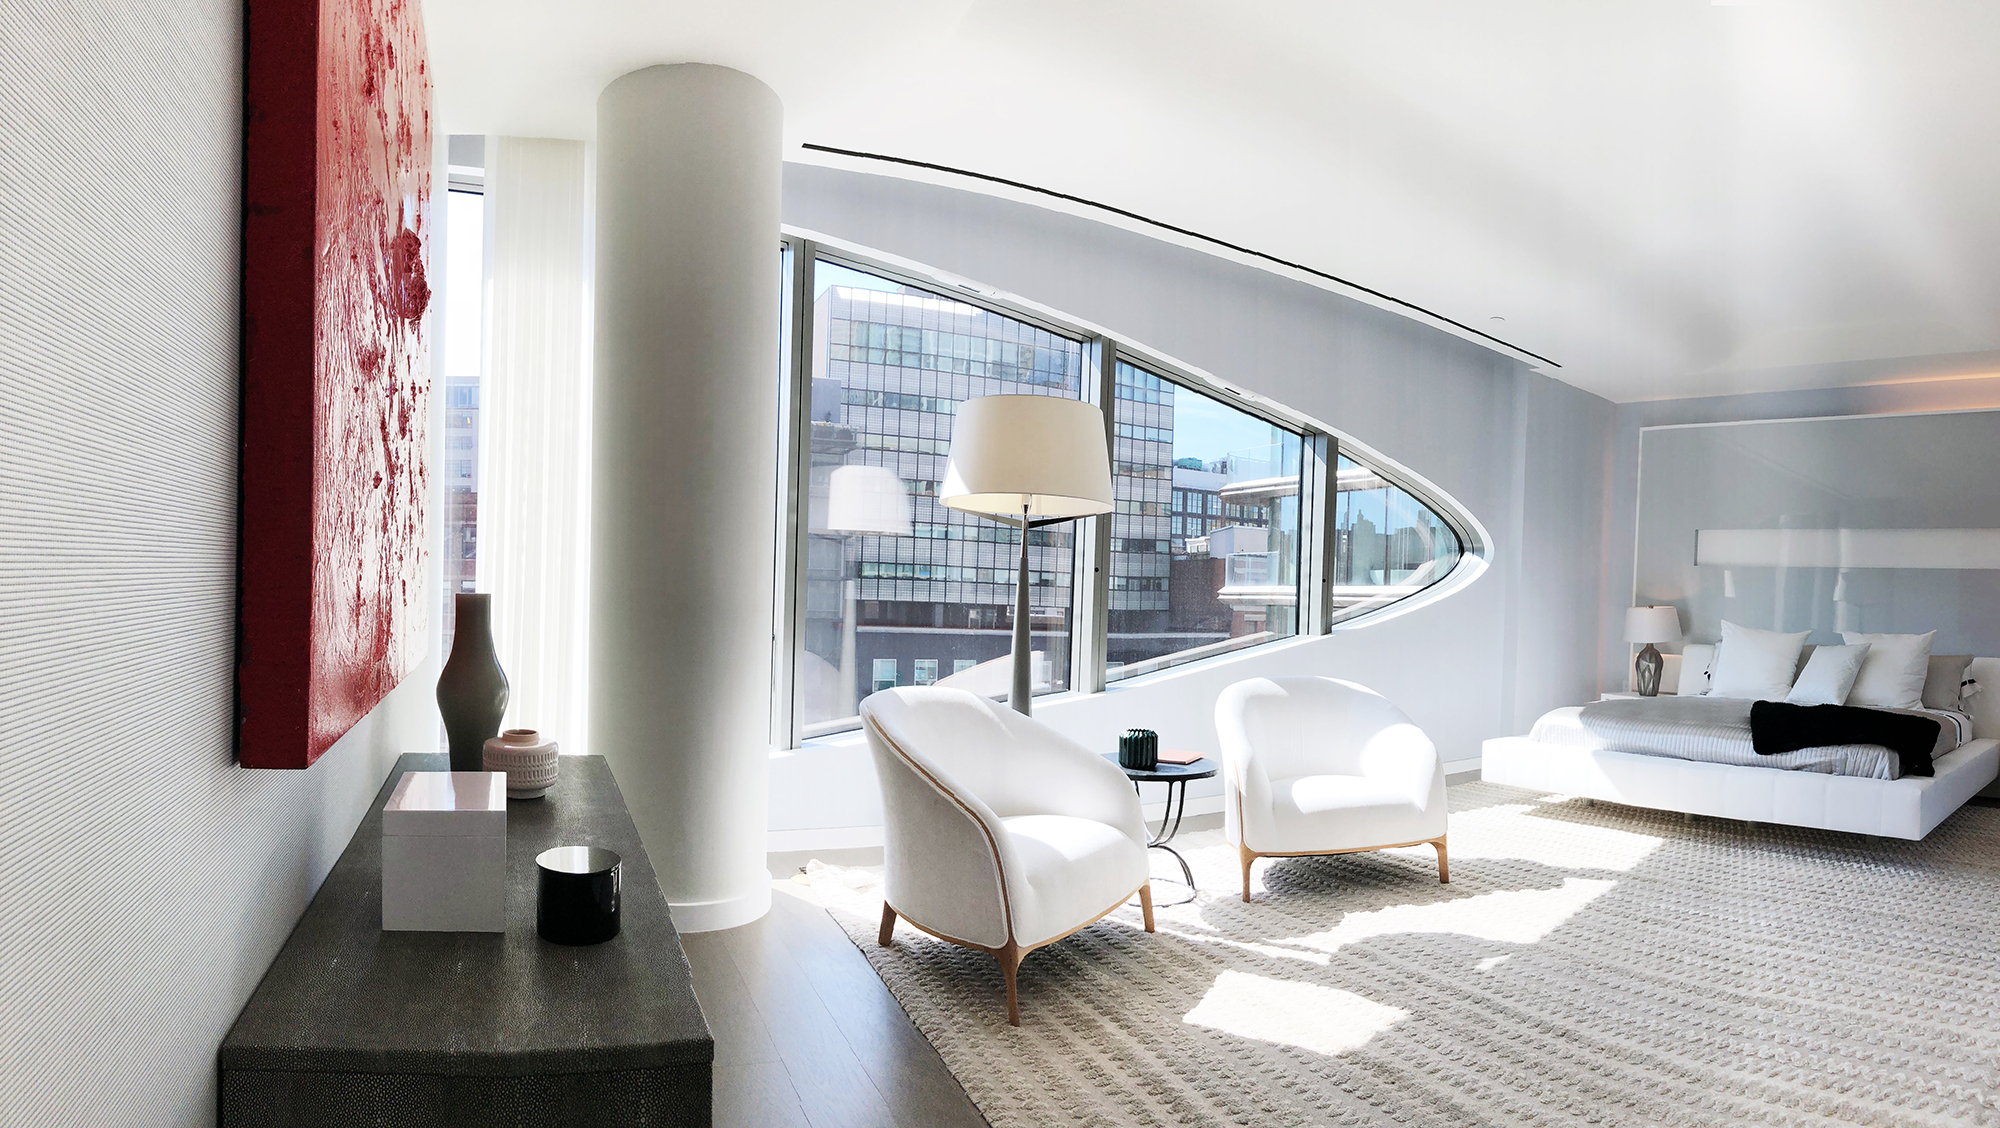 Zaha Hadid Interior at 520 West 28th Street